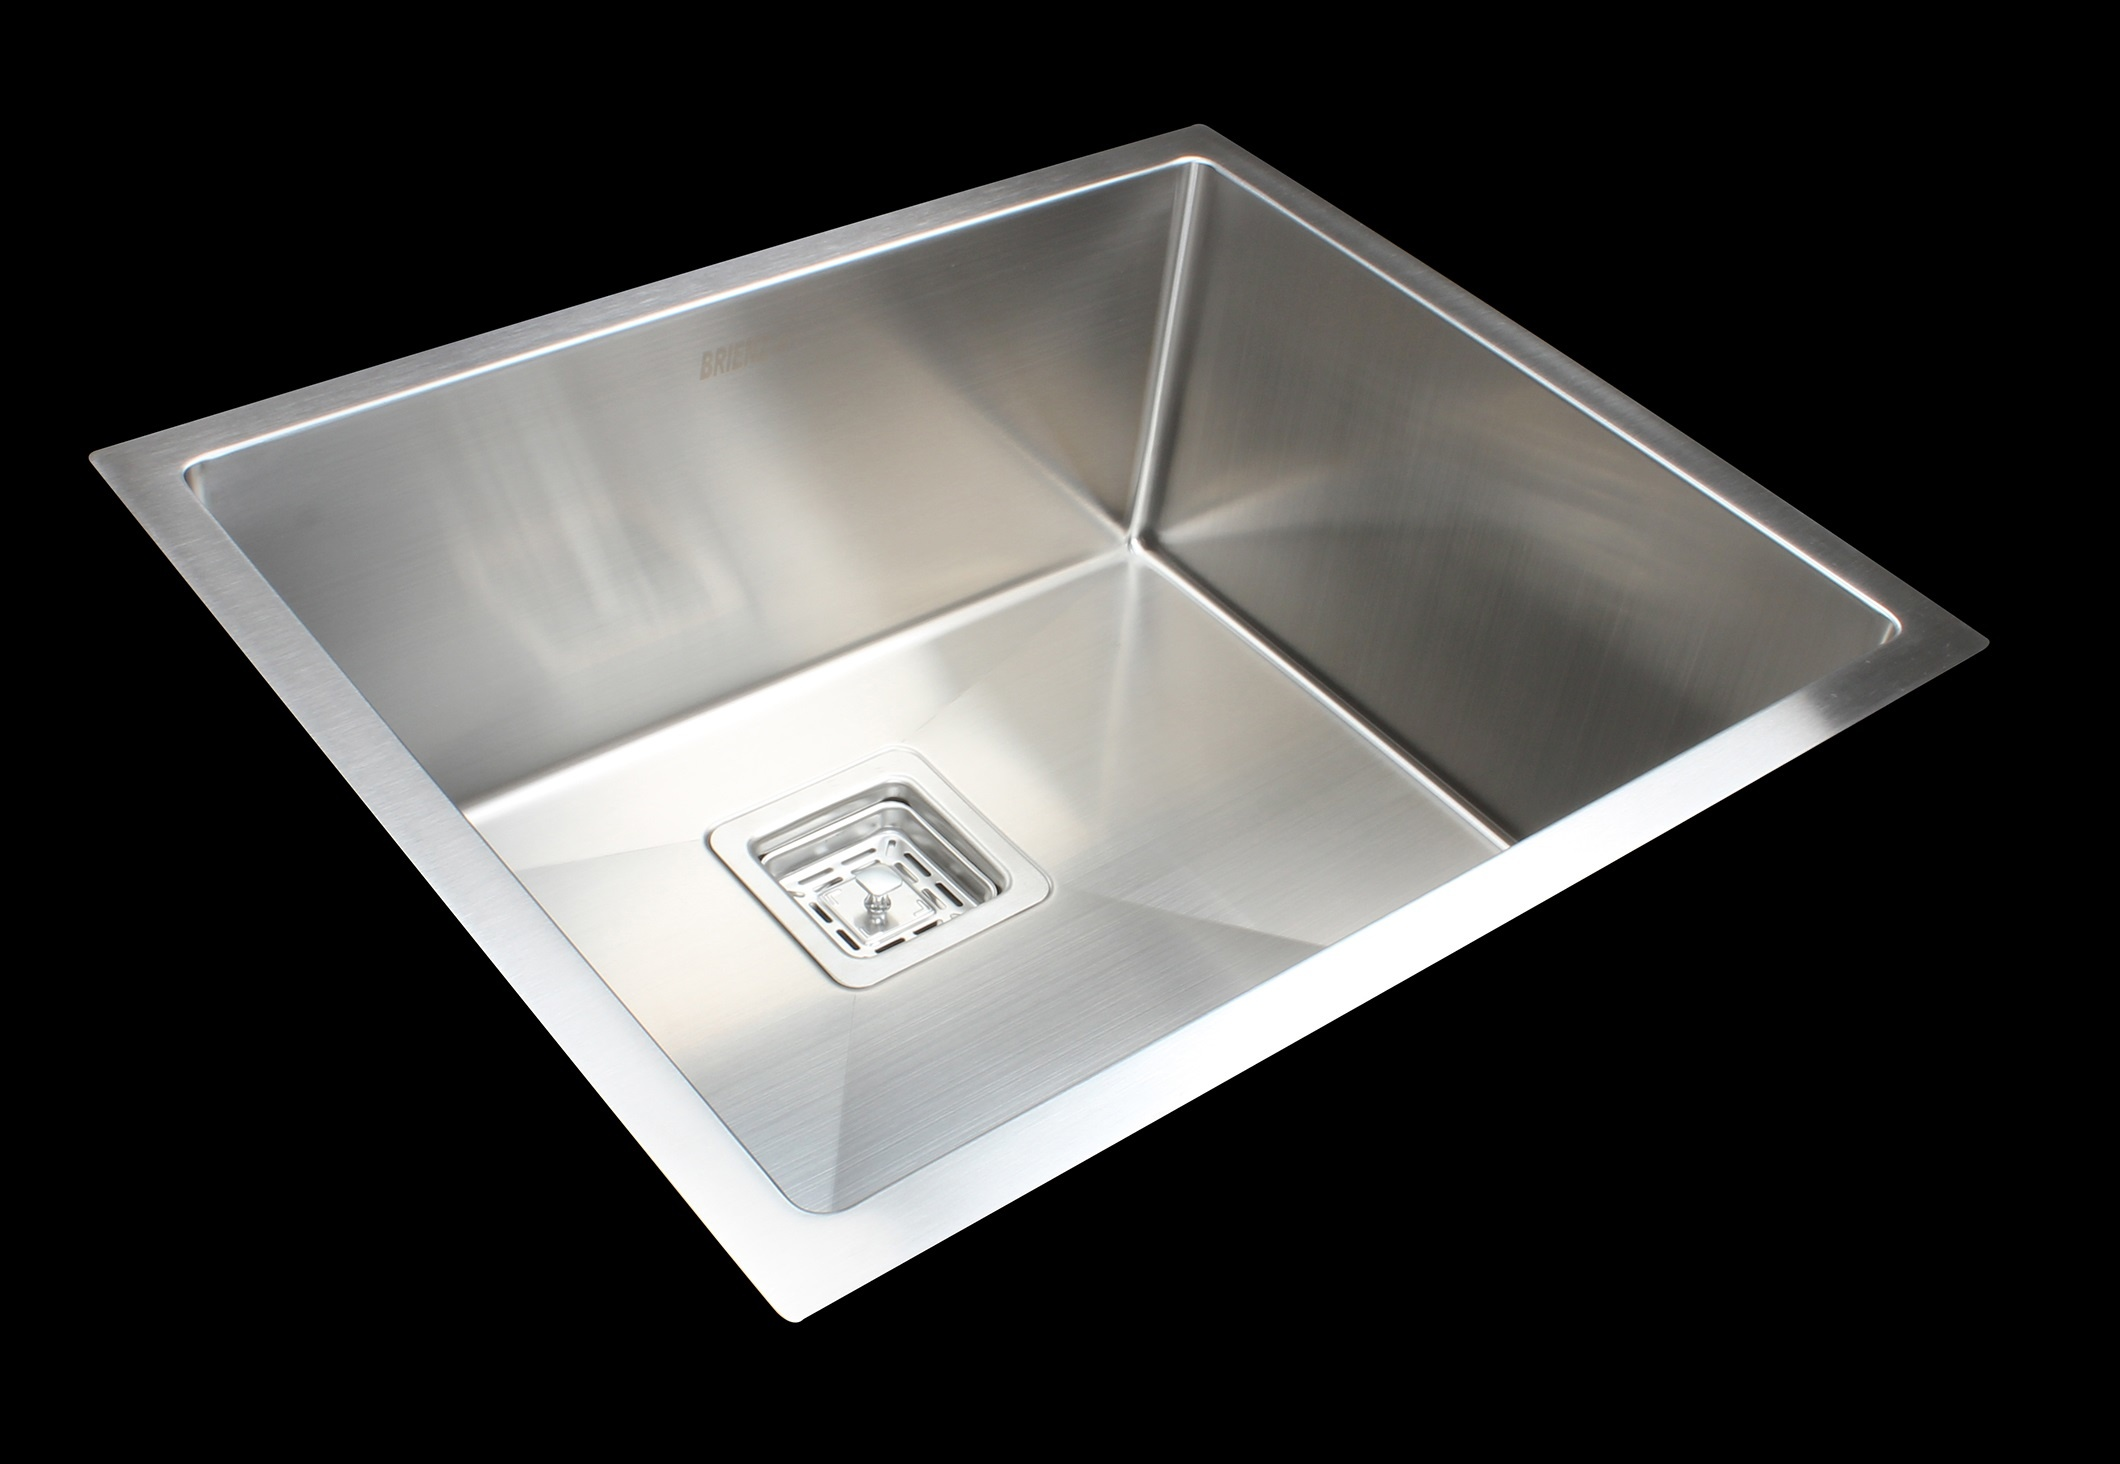 550x455mm Handmade 1.5mm Stainless Steel Undermount / Topmount Kitchen Sink with Square Waste  Z2741